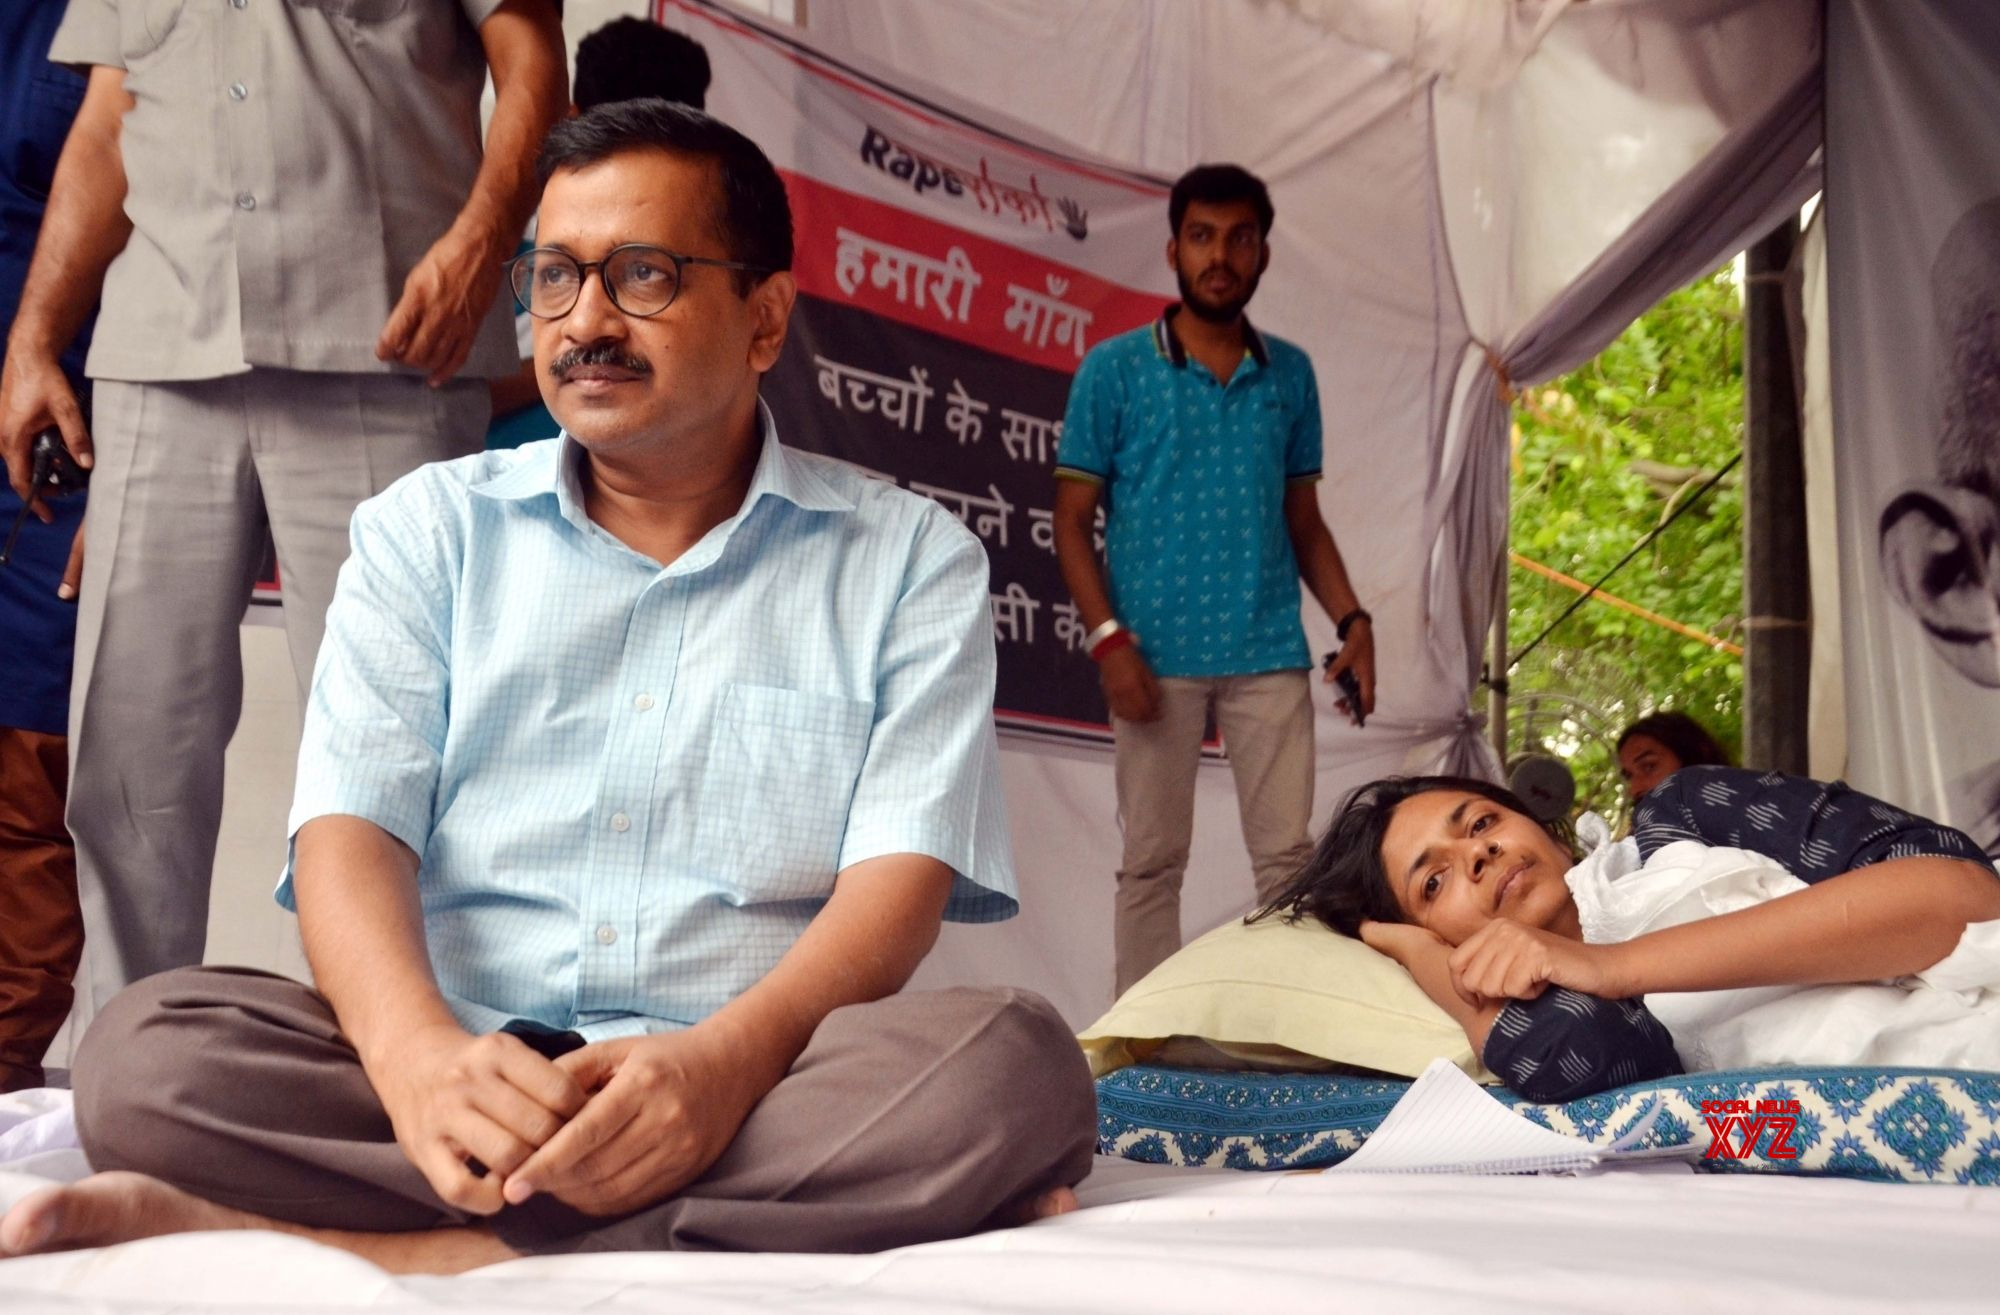 After 3 years, Kejriwal back to 'dharna' politics